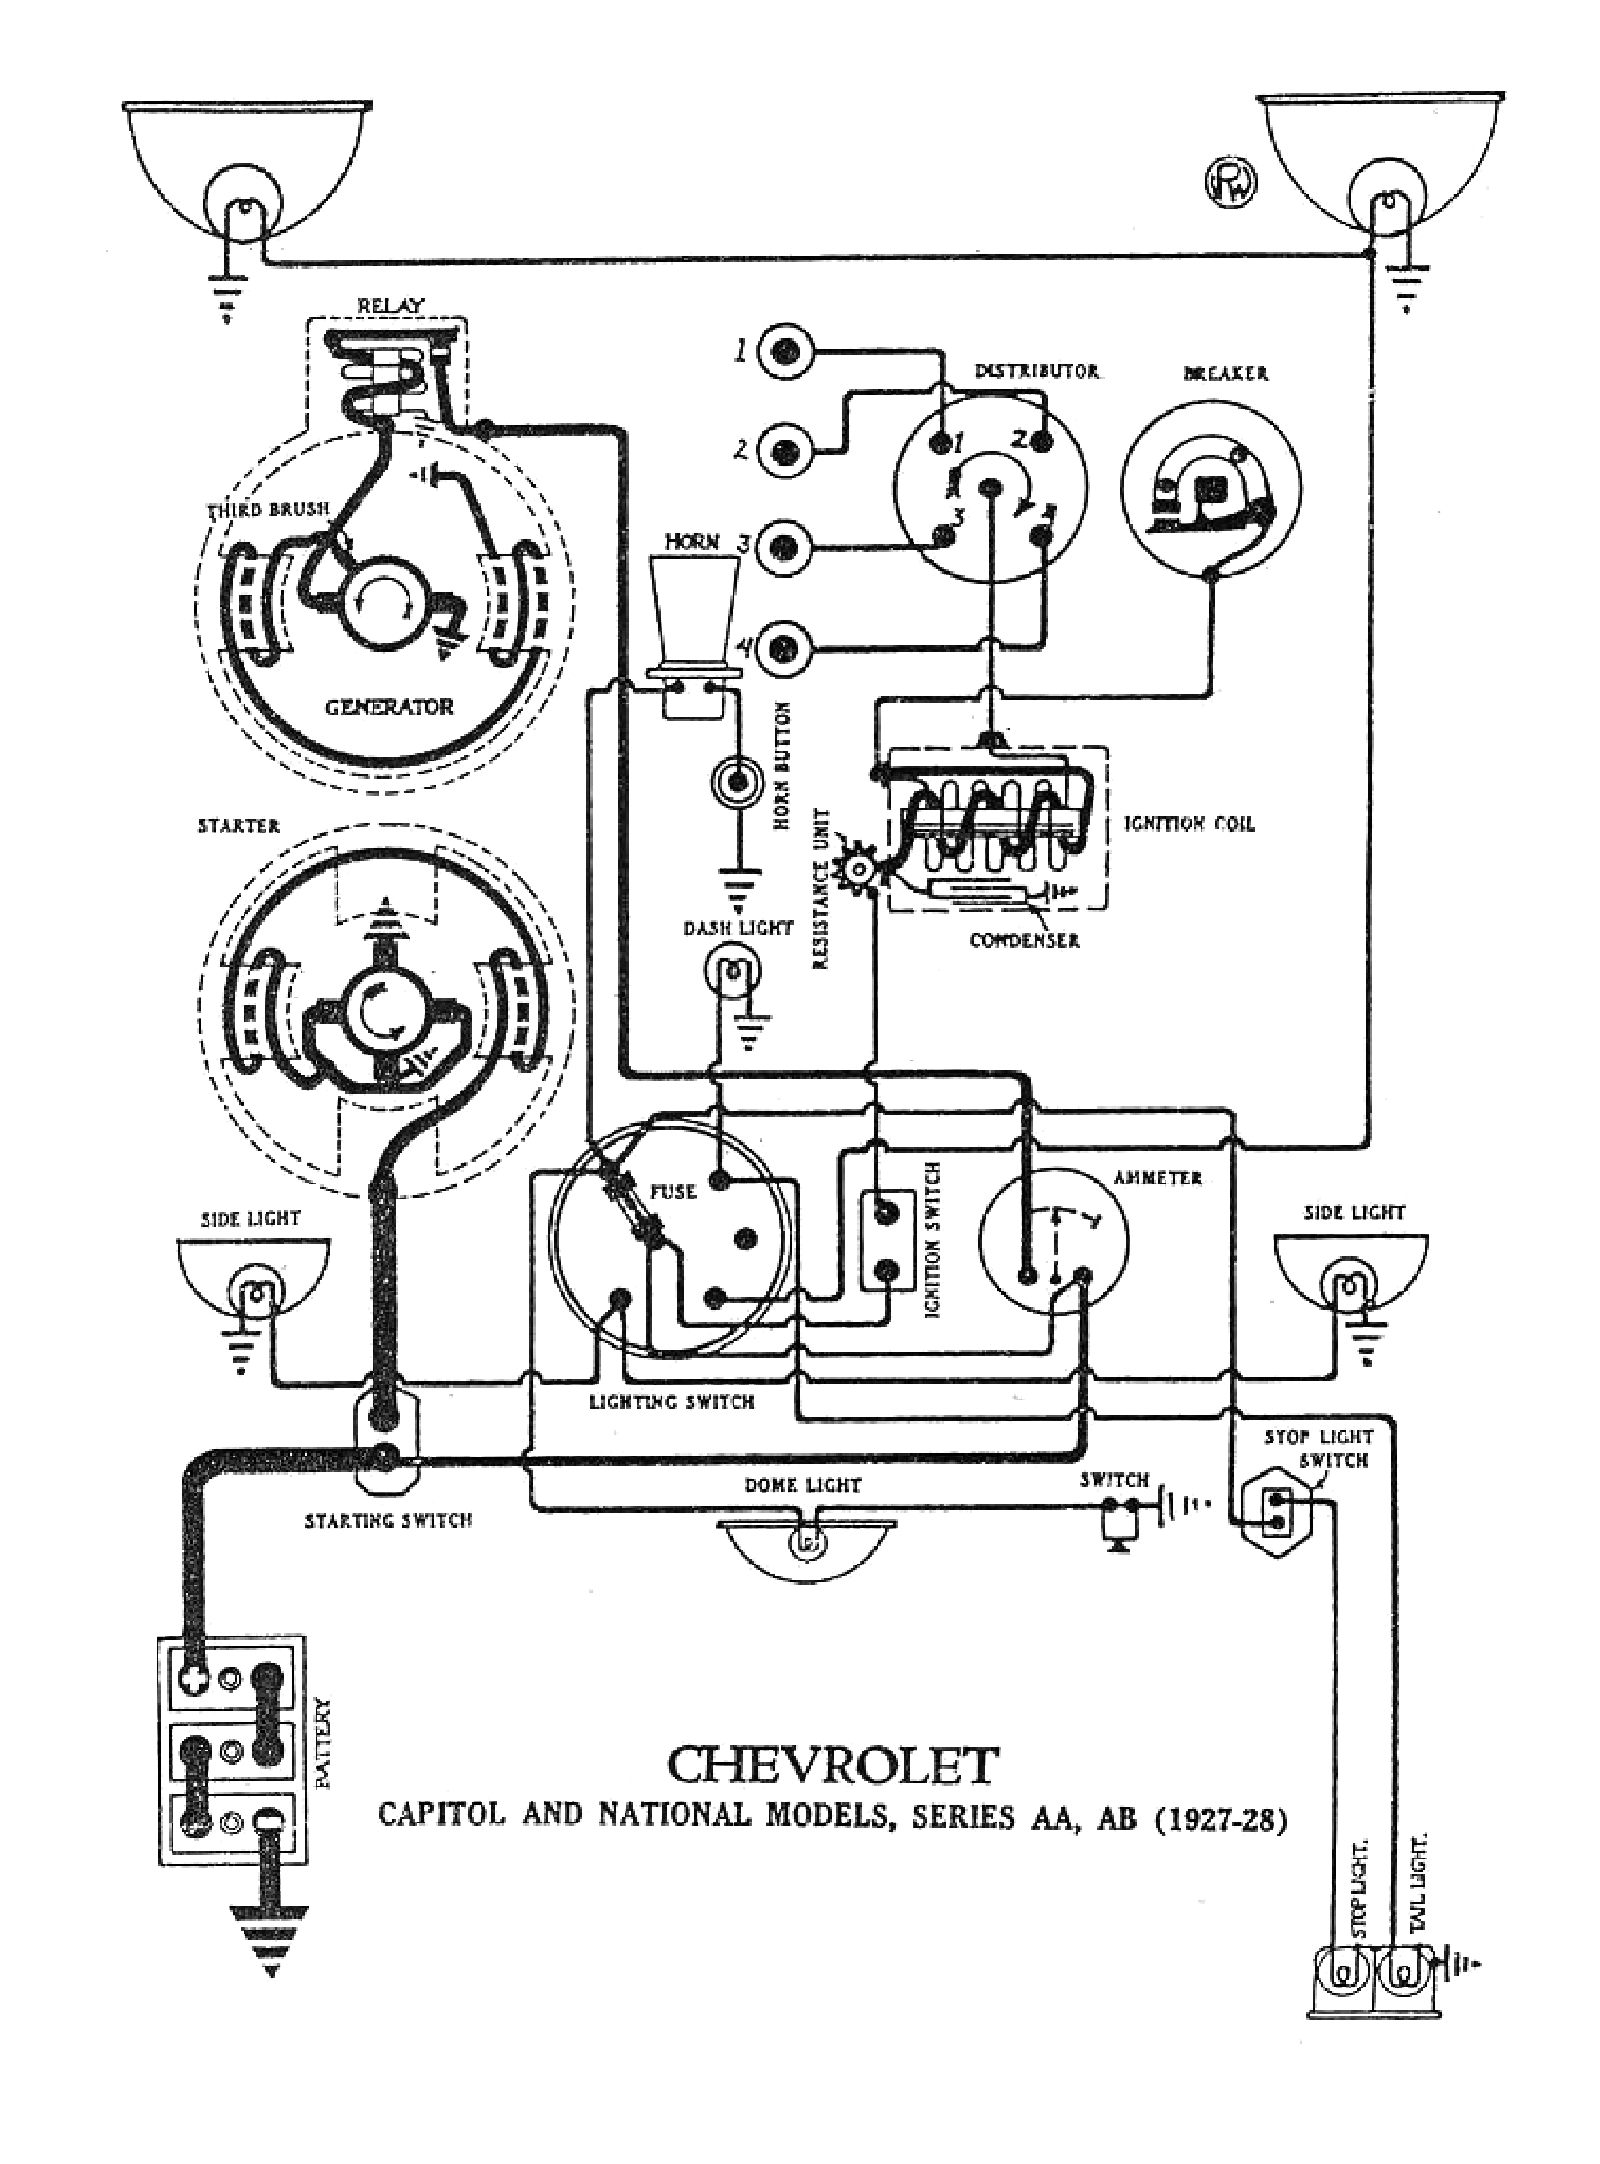 Chevy Wiring diagrams on chevy cooling system, chevy truck diagrams, 1999 chevrolet truck diagrams, chevy oil pressure sending unit, gmc fuse box diagrams, chevy truck wiring, chevy accessories, chevy heater core replacement, chevy brake diagrams, chevy radio wiring, chevy wiring harness, chevy starter diagrams, chevy starting system, chevy alternator wiring info, chevy gas line diagrams, chevy maintenance schedule, chevy alternator diagrams, chevy headlight switch wiring, chevy electrical diagrams, chevy speaker wiring,